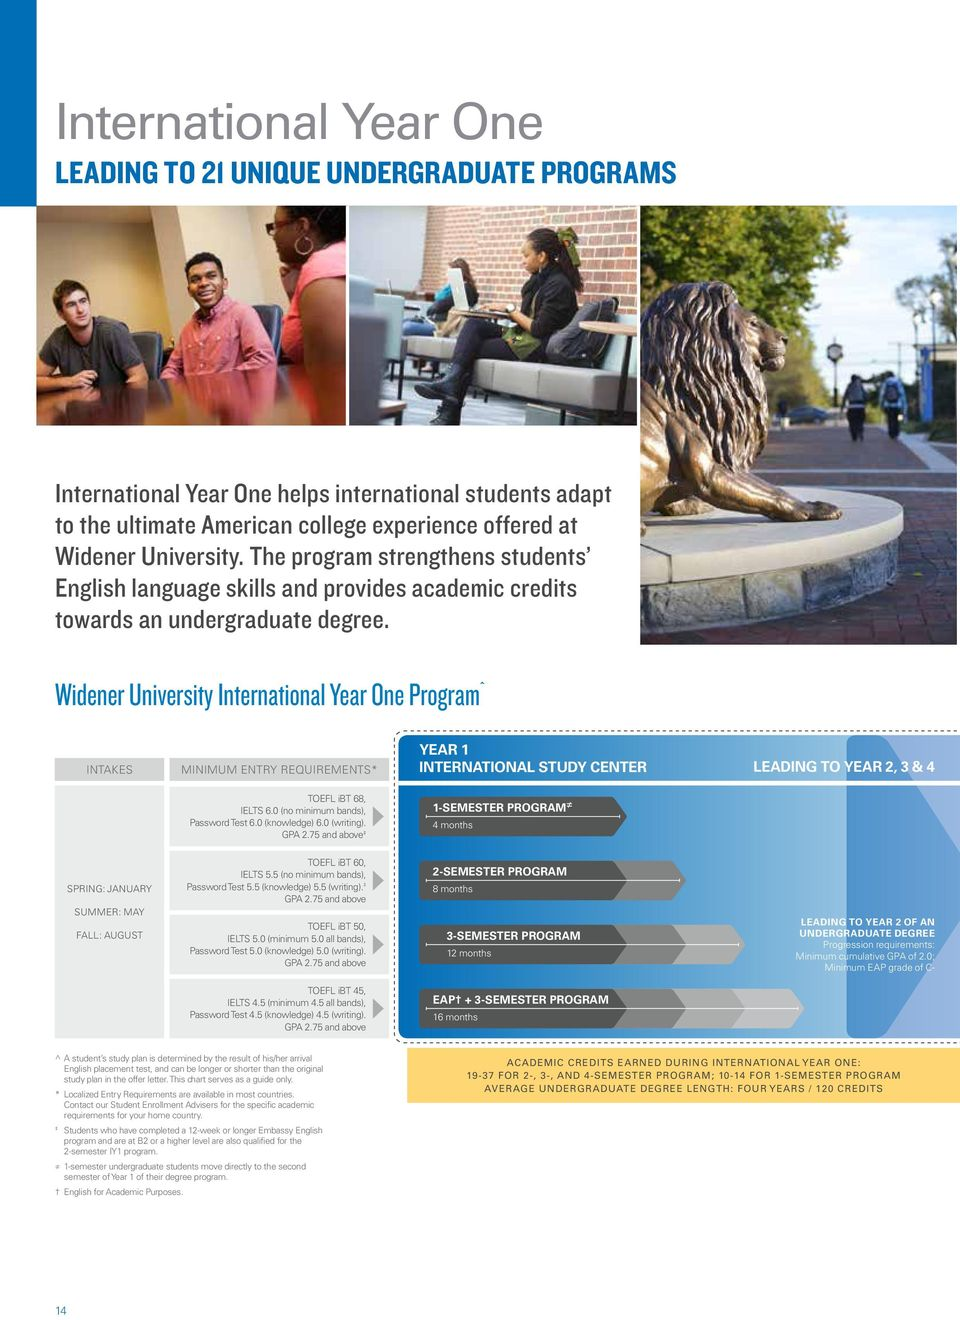 Widener University International Year One Program^ INTAKES MINIMUM ENTRY REQUIREMENTS* YEAR 1 INTERNATIONAL STUDY CENTER LEADING TO YEAR 2, 3 & 4 TOEFL ibt 68, IELTS 6.